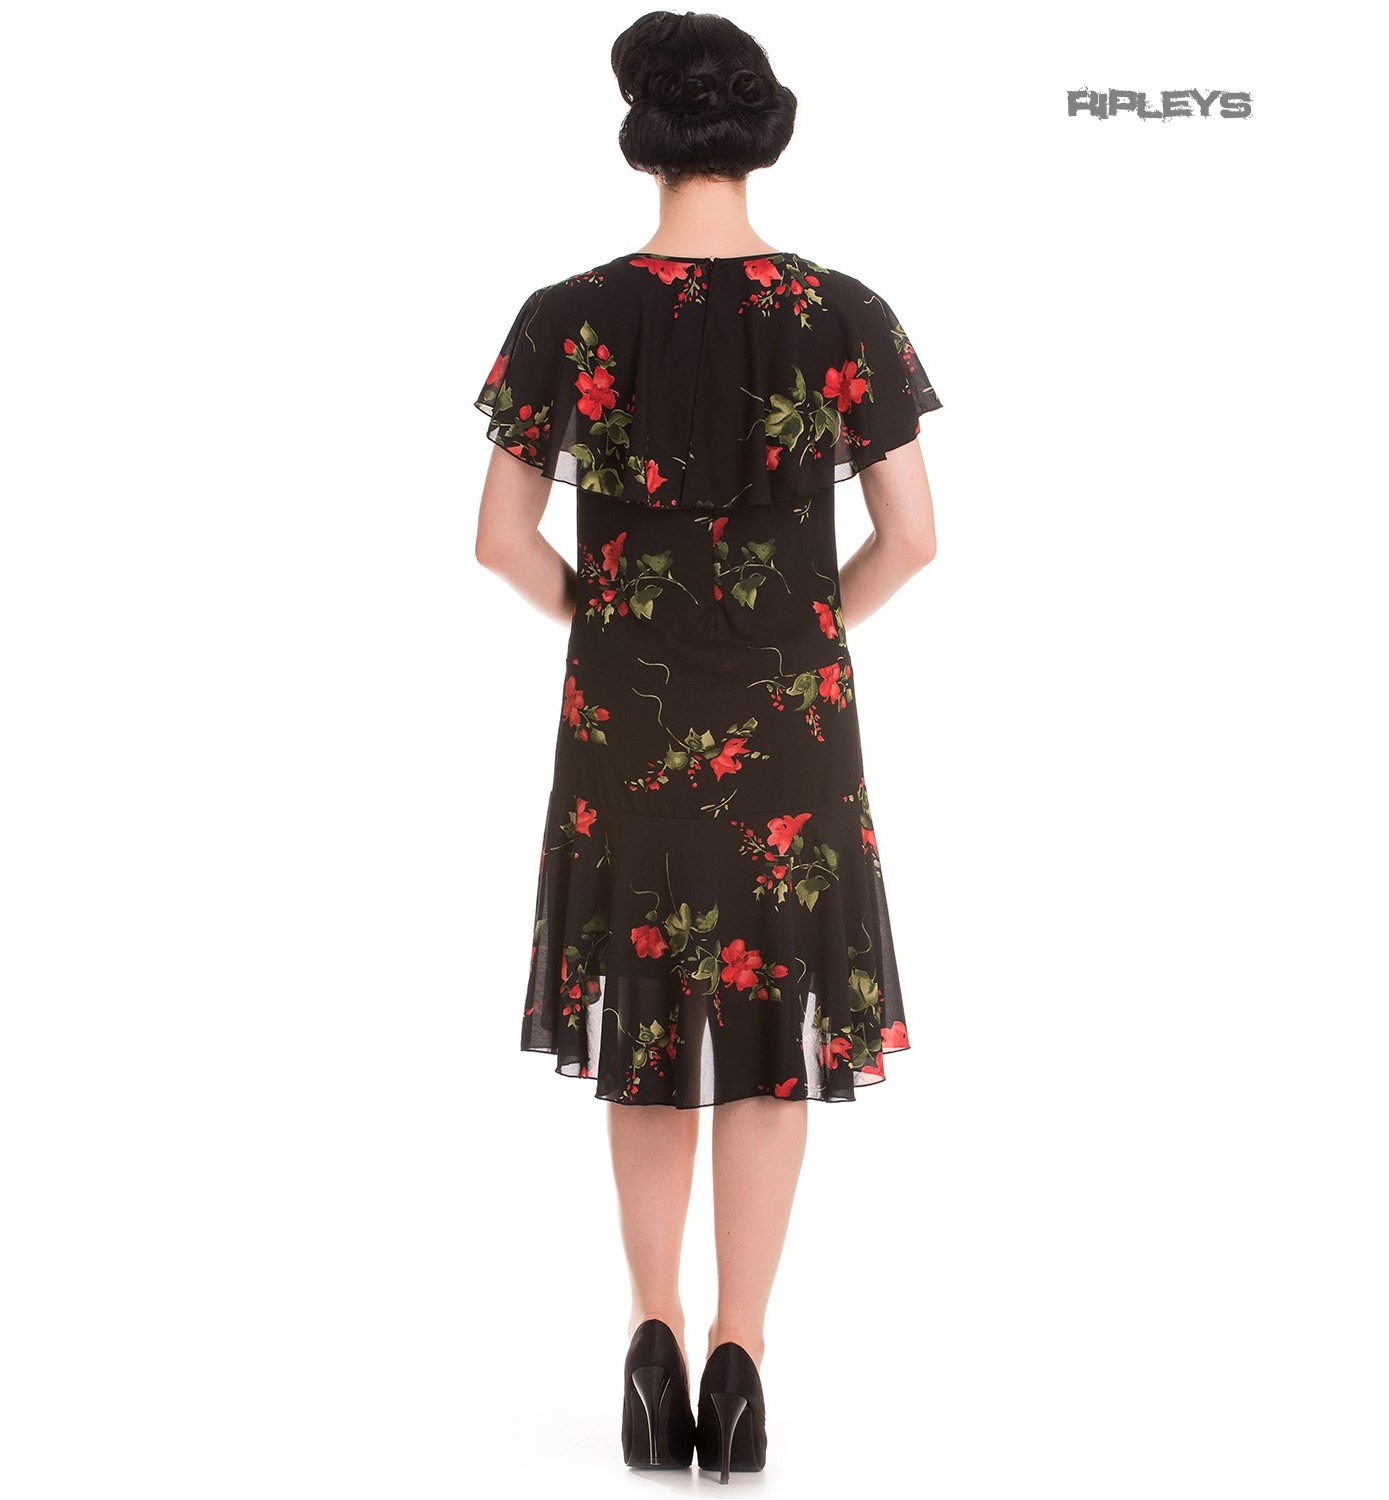 Hell-Bunny-20s-40s-Black-Flapper-Cocktail-Party-Dress-LILY-Floral-Black-All-Size thumbnail 4